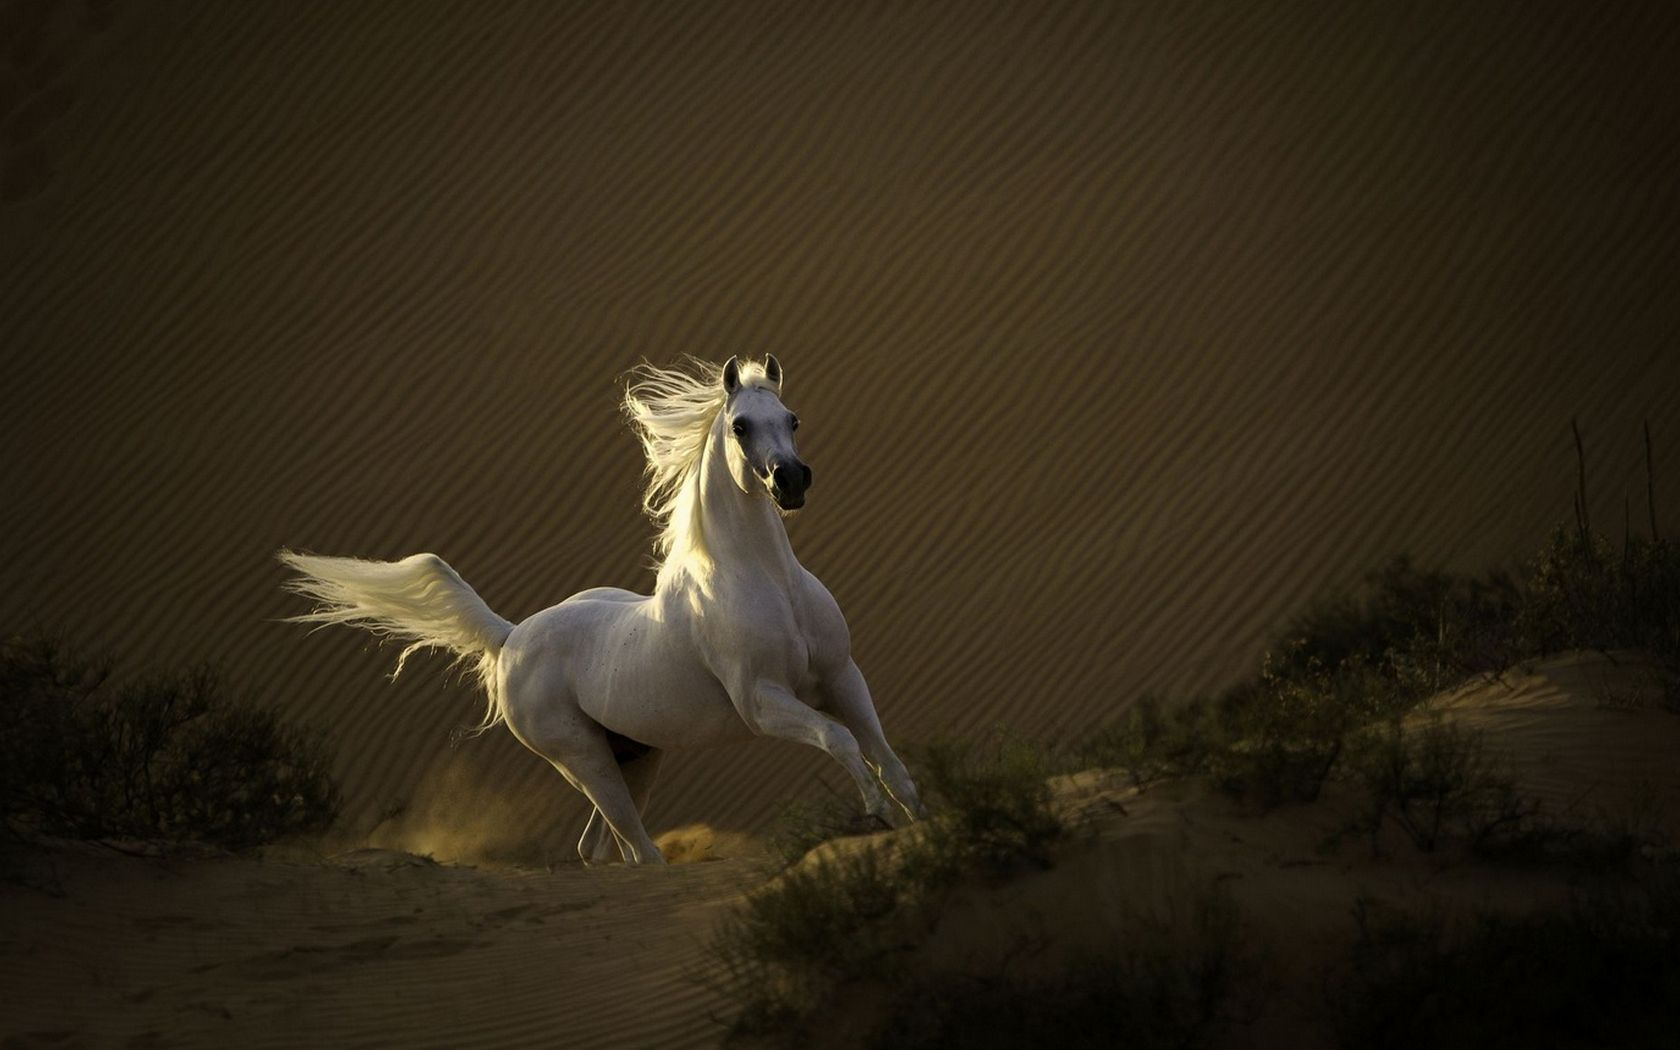 Good Wallpaper Horse Desert - e2f7f2cd471a54e3f33fbd624f9f959a  Pictures_91981.jpg